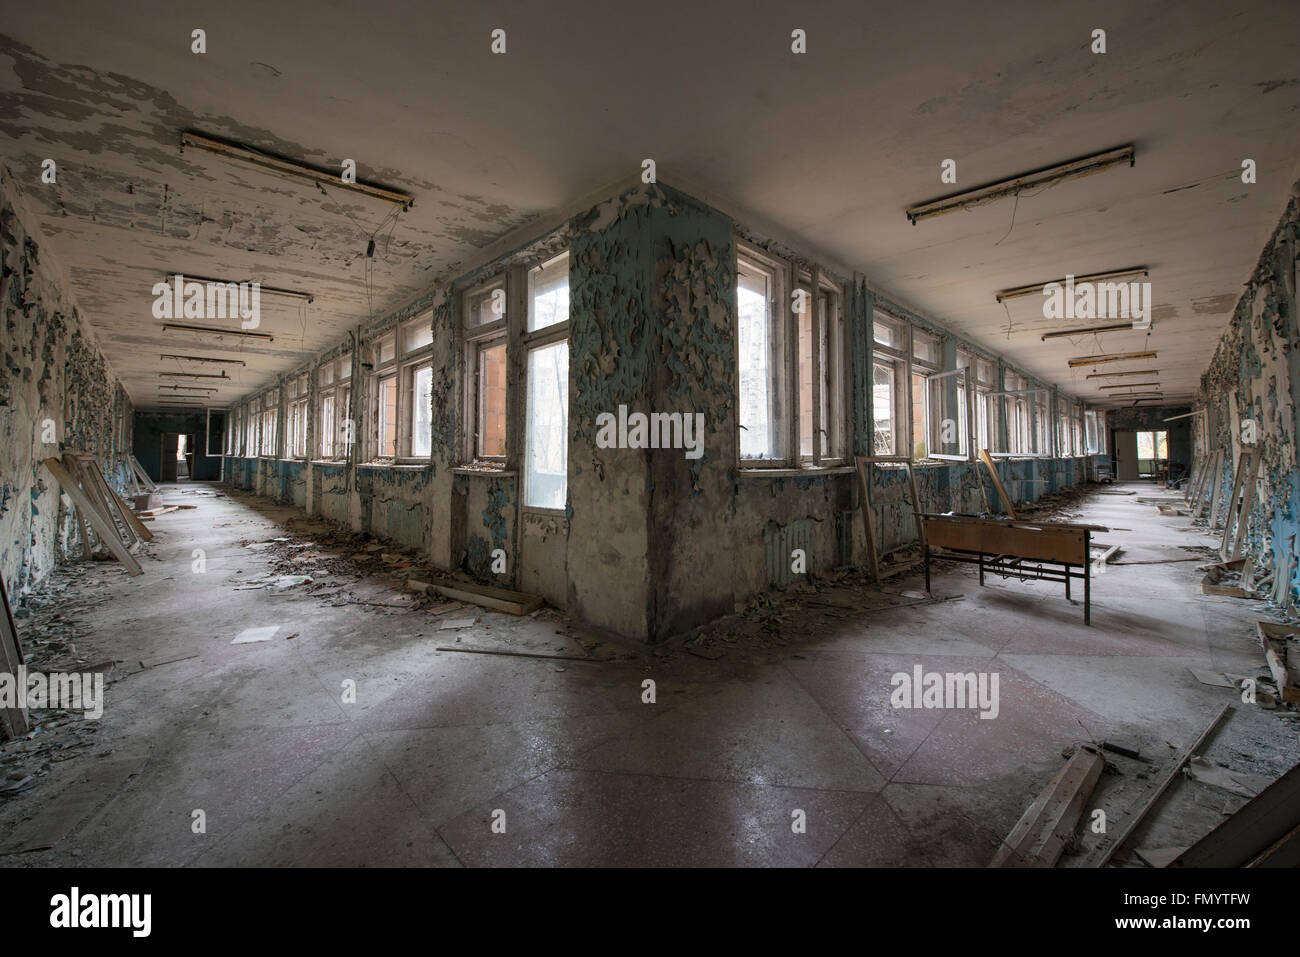 Corridor in elementry school in Pripyat, Chernobyl scene of 1986 nuclear disaster - Stock Image